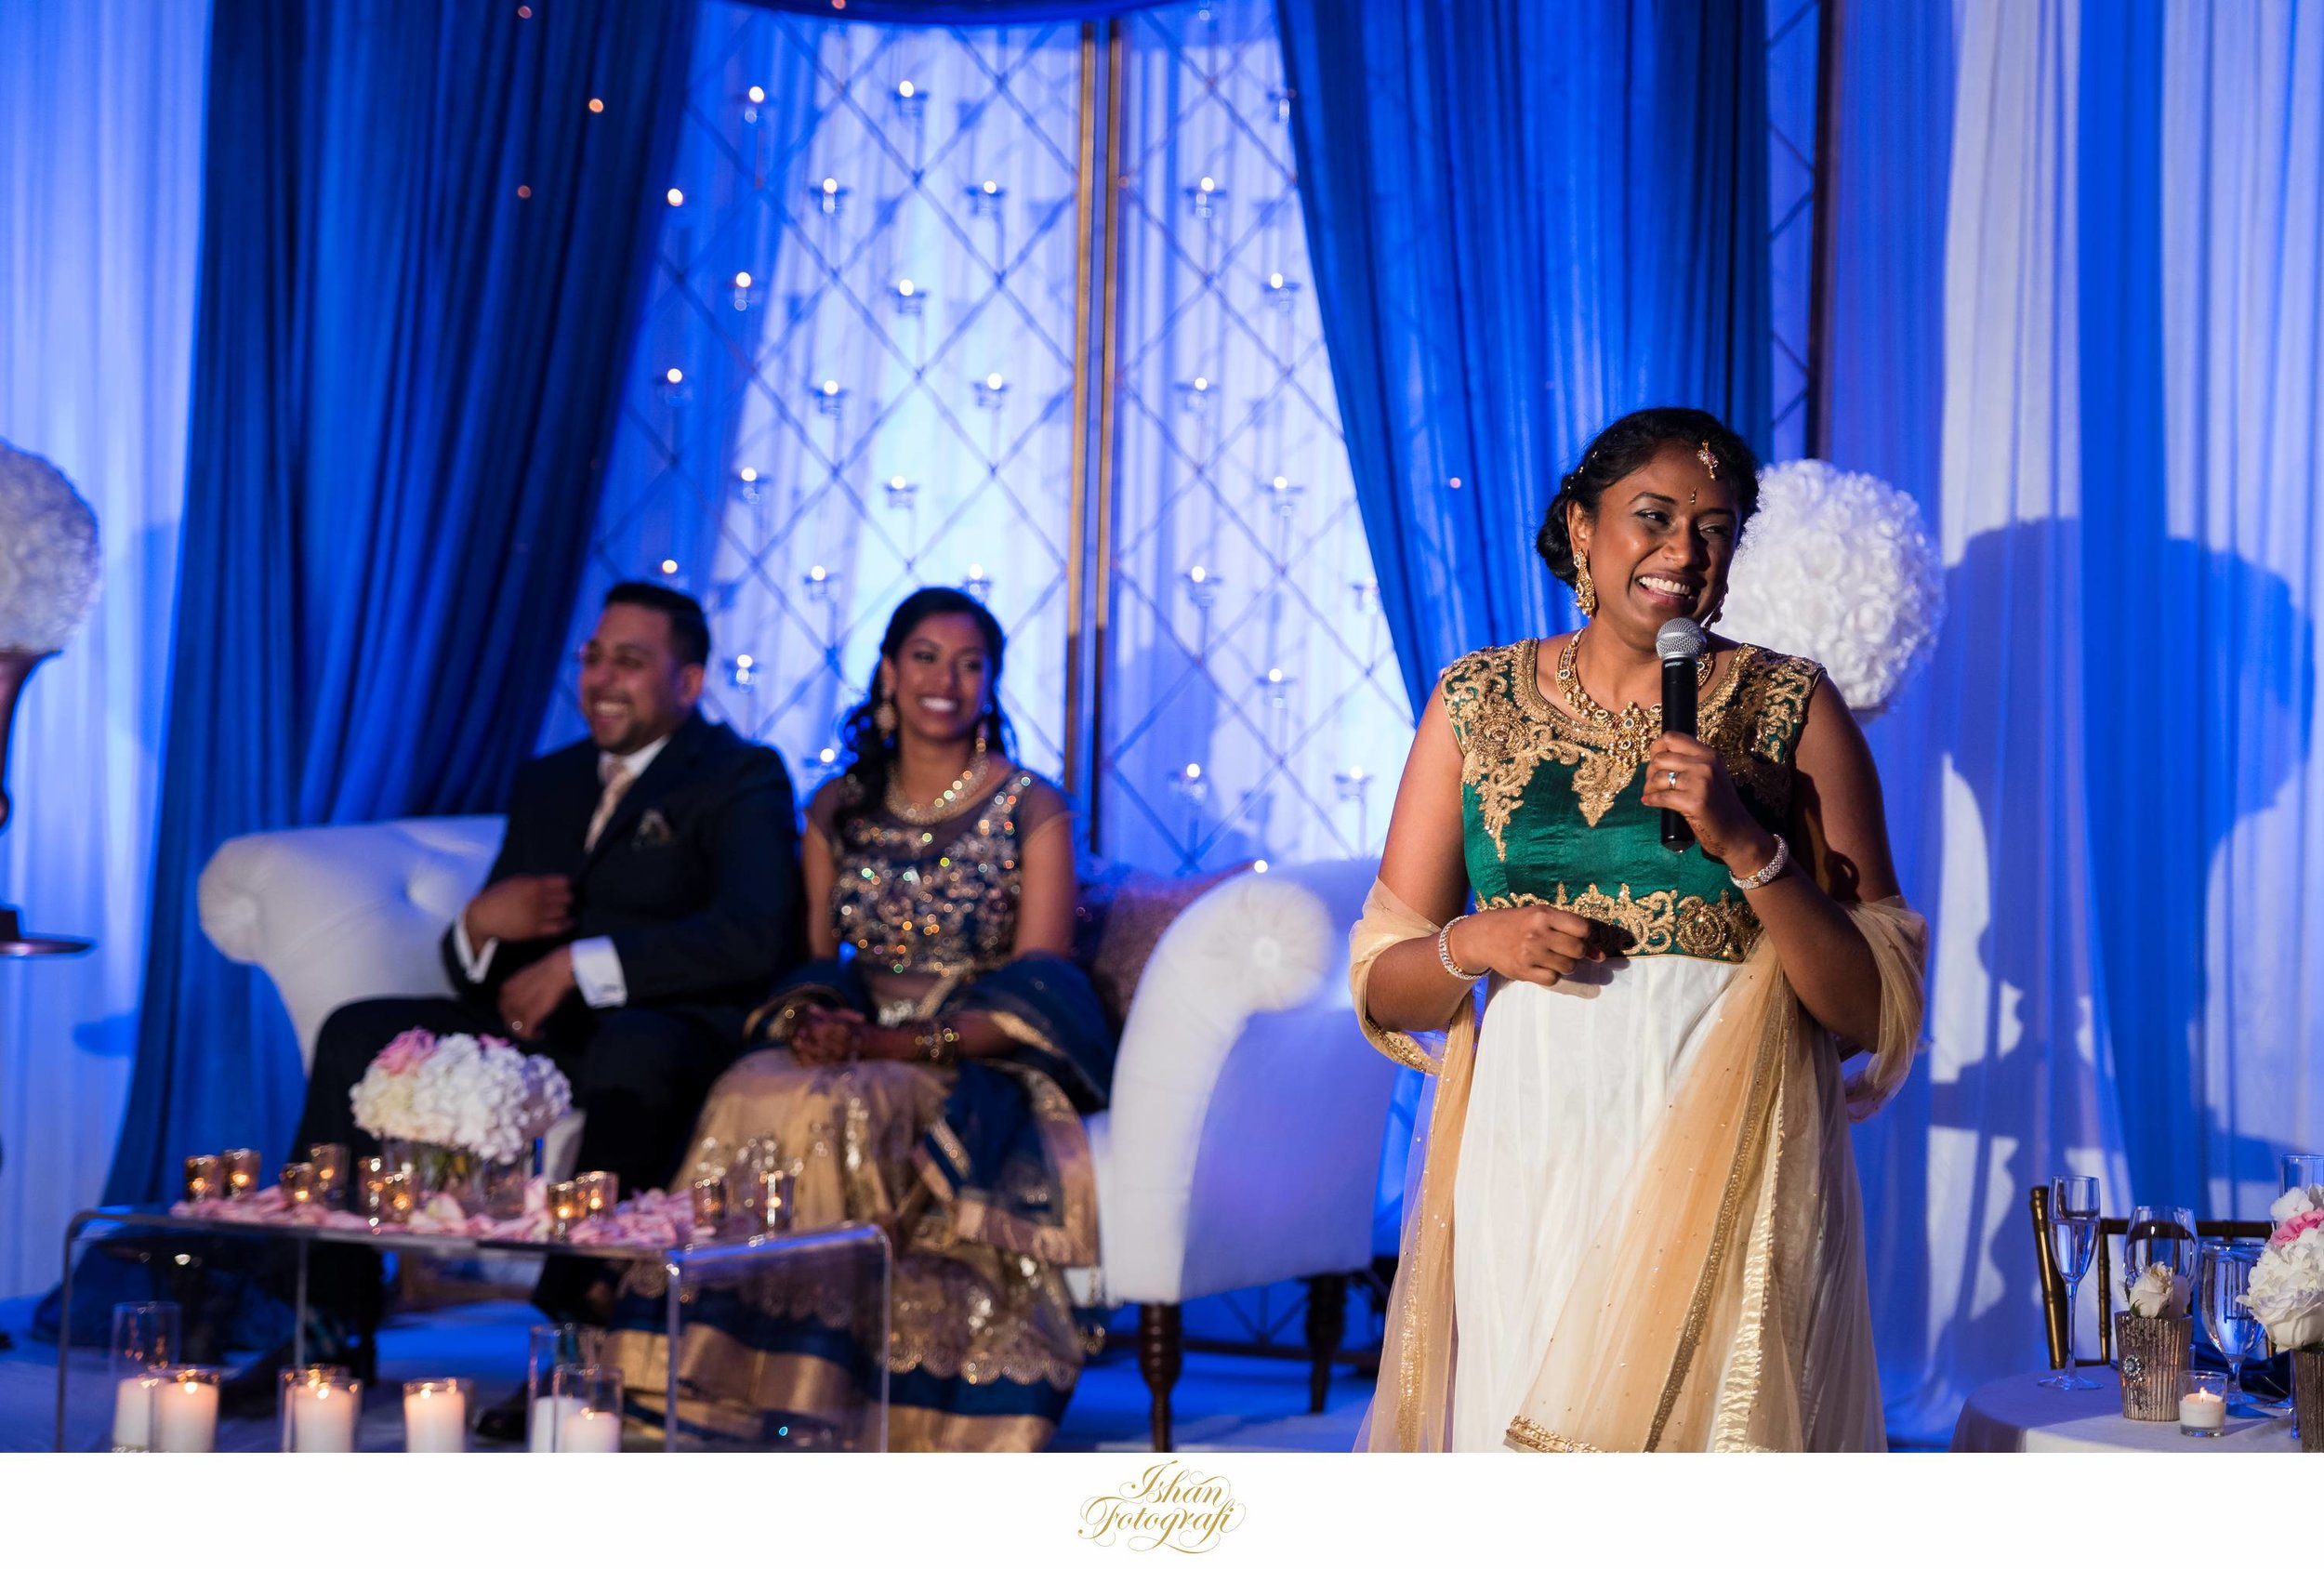 wedding-reception-the-westin-governor-nj